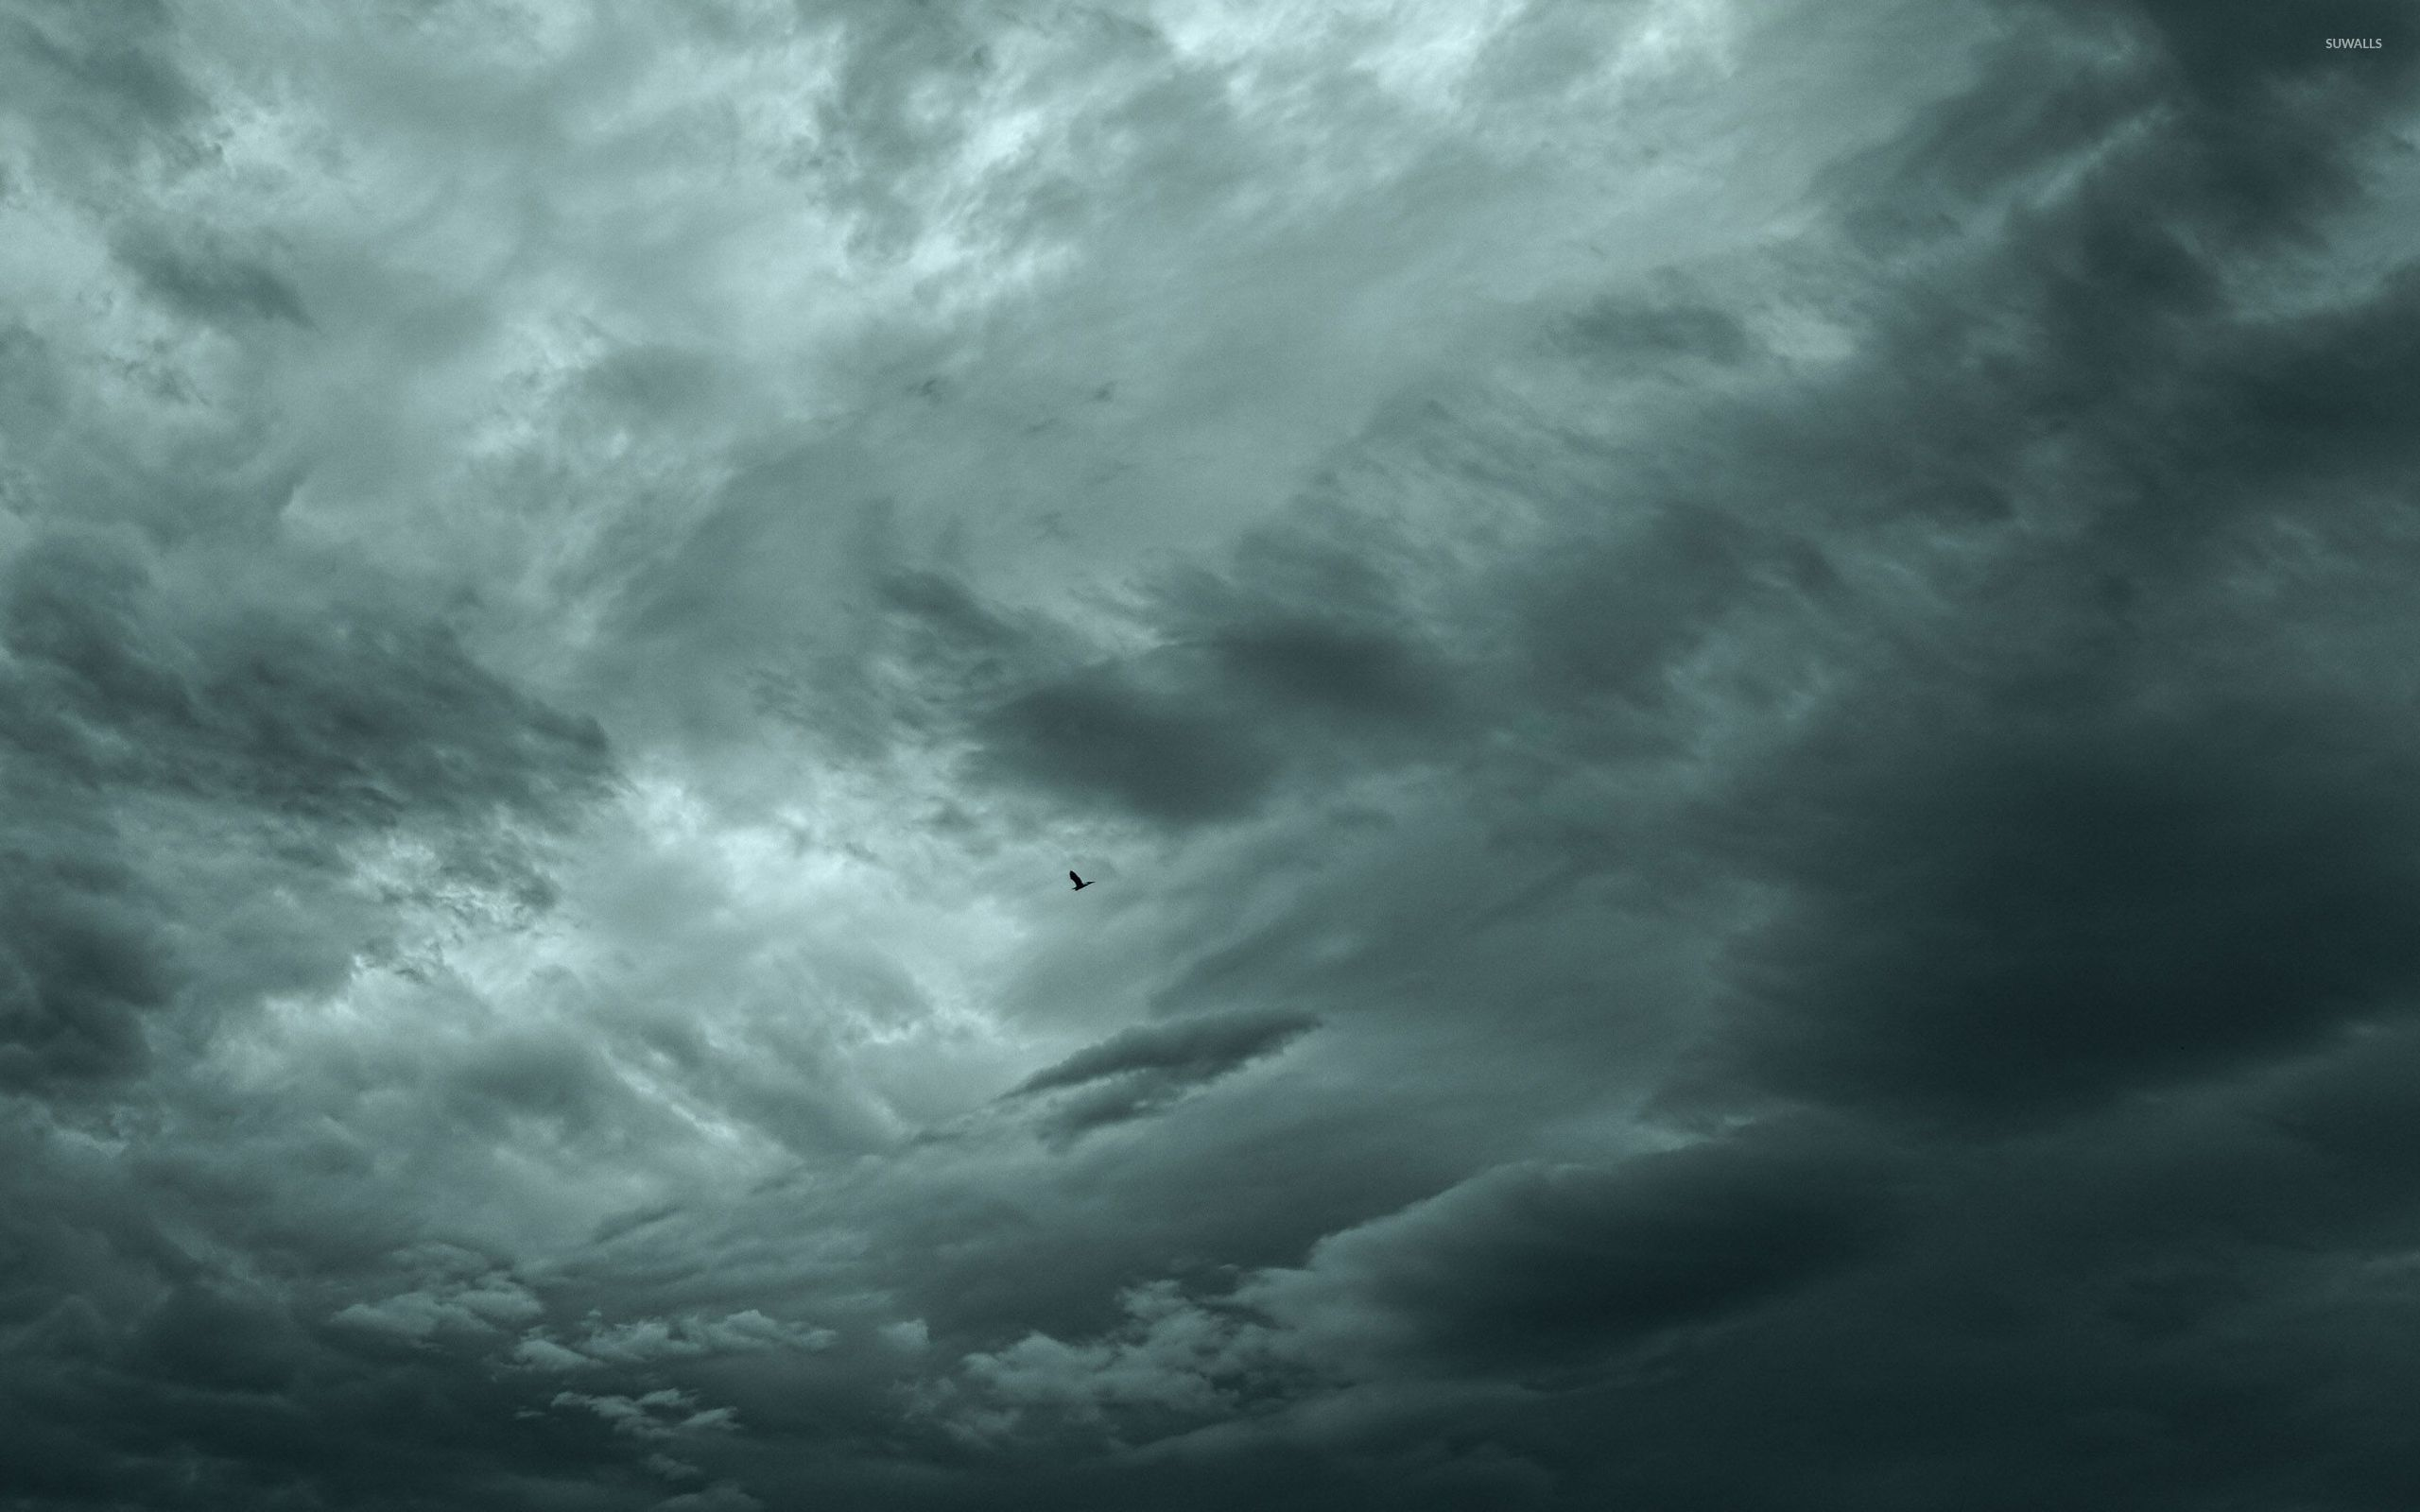 Bird under the storm clouds wallpaper Wallpaper